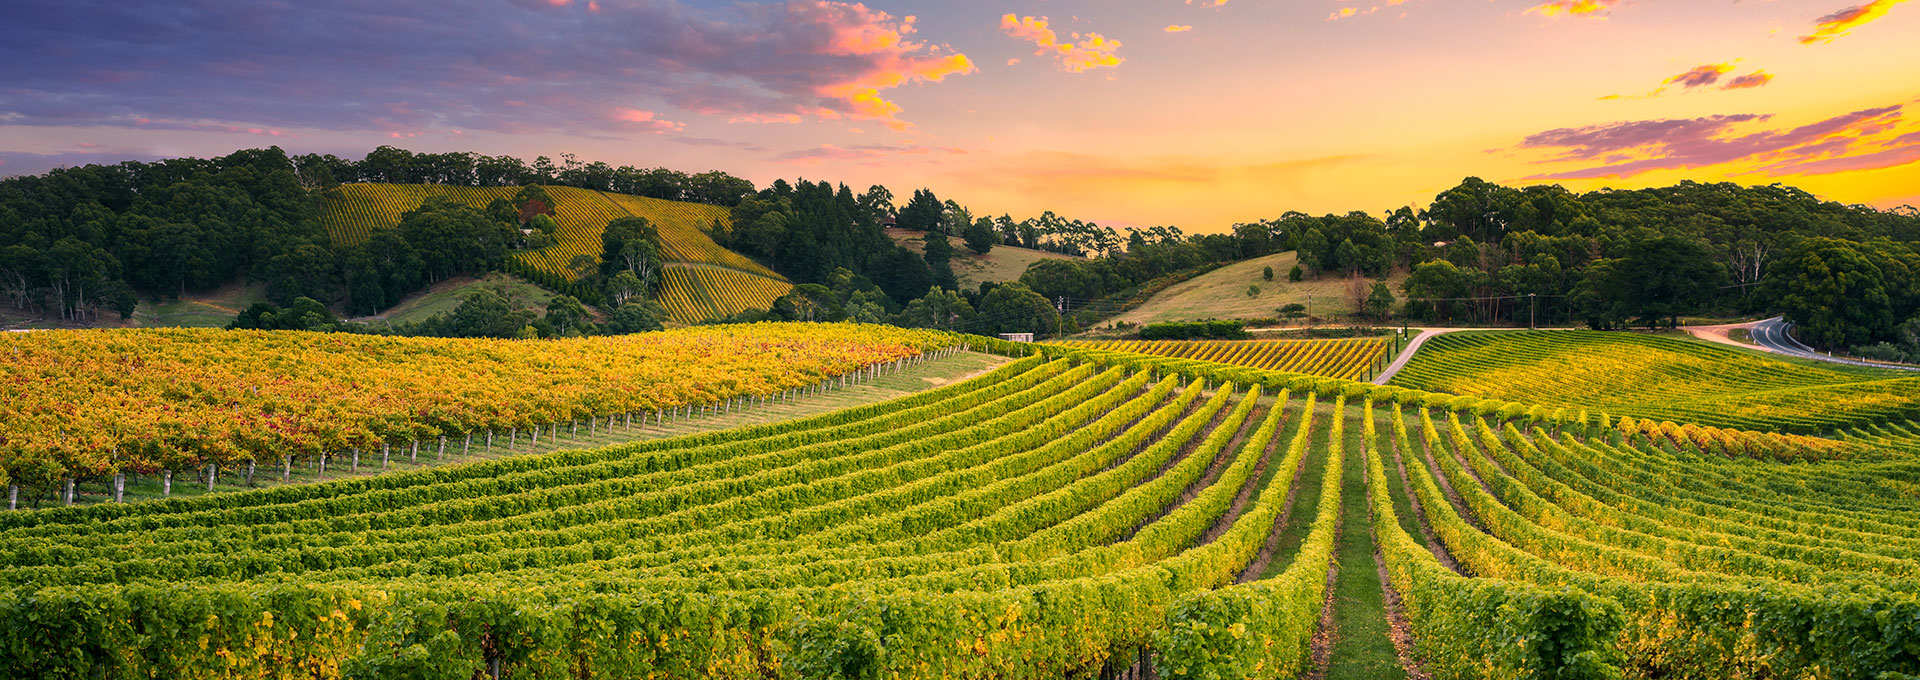 RIVALITA Wines: The Sustainability Certification Journey of a Green Business